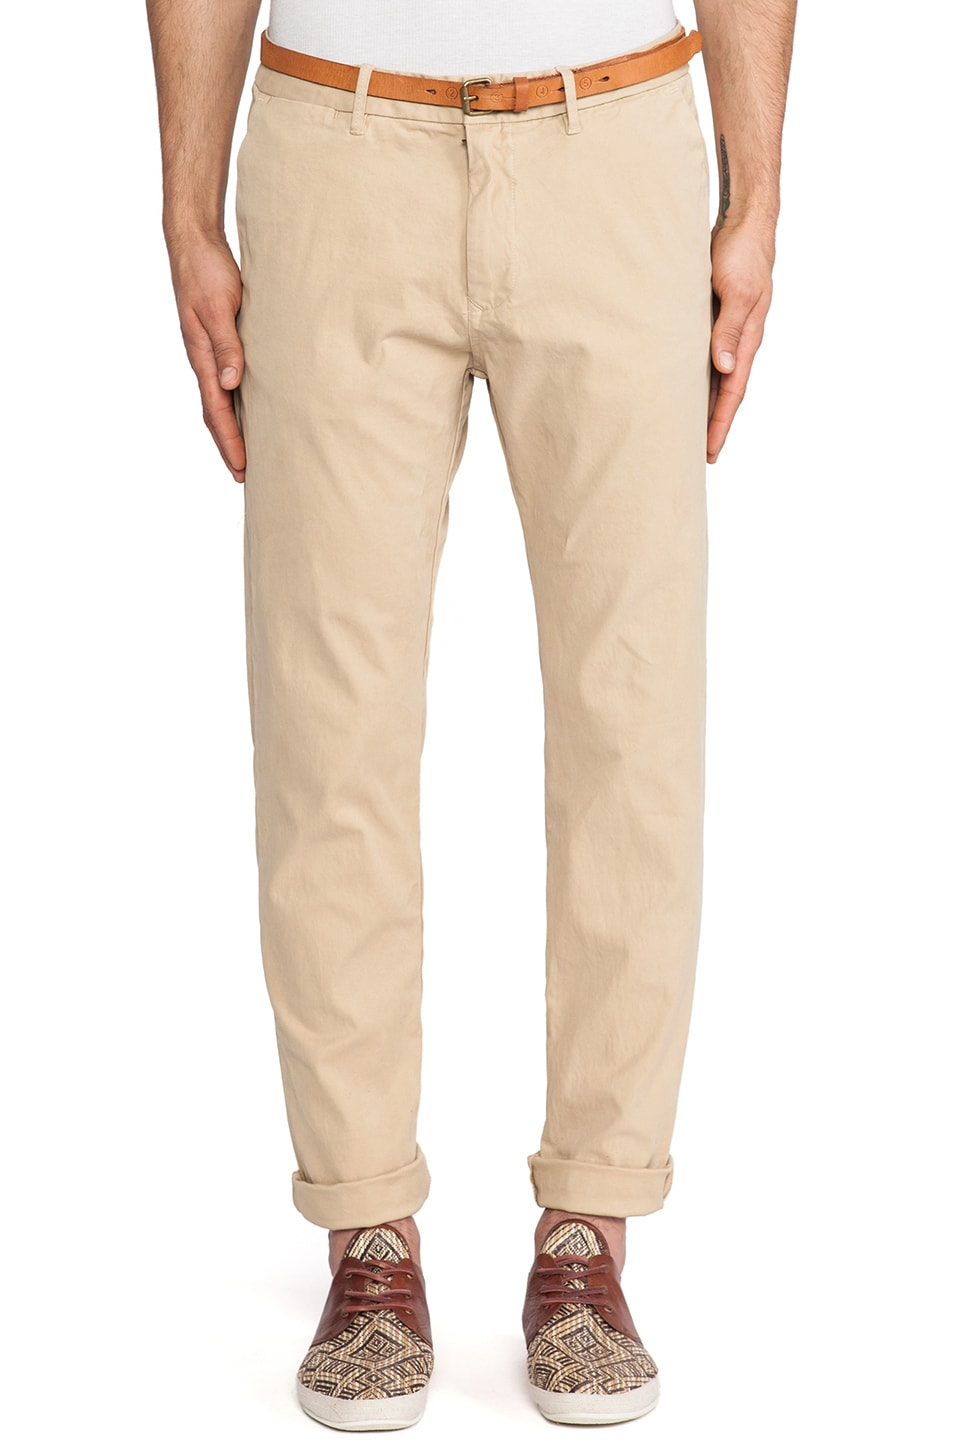 Scotch & Soda Basic Belted Slim Fit Chino in Kit